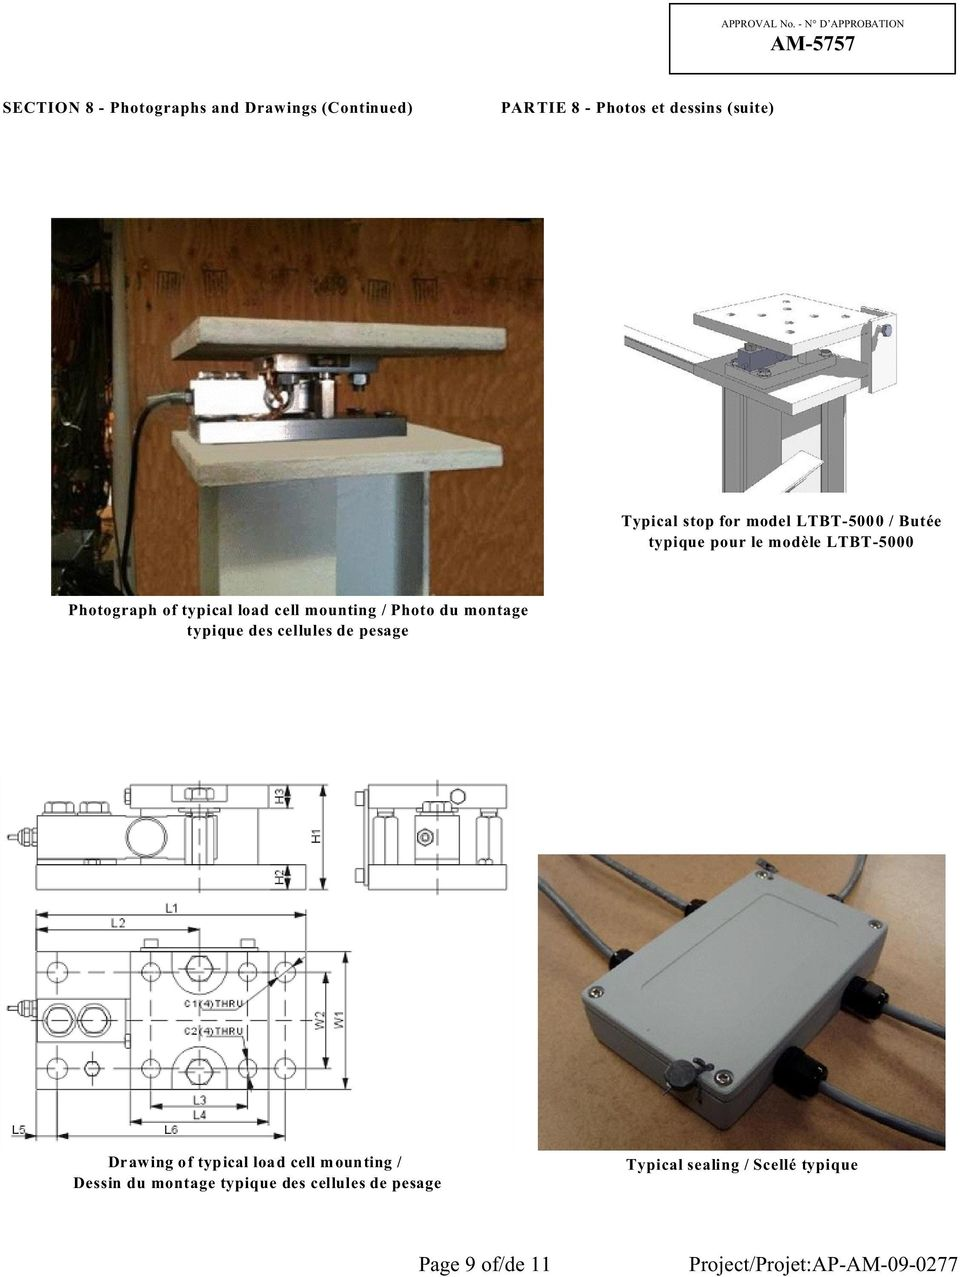 mounting / Photo du montage typique des cellules de pesage Drawing of typical load cell